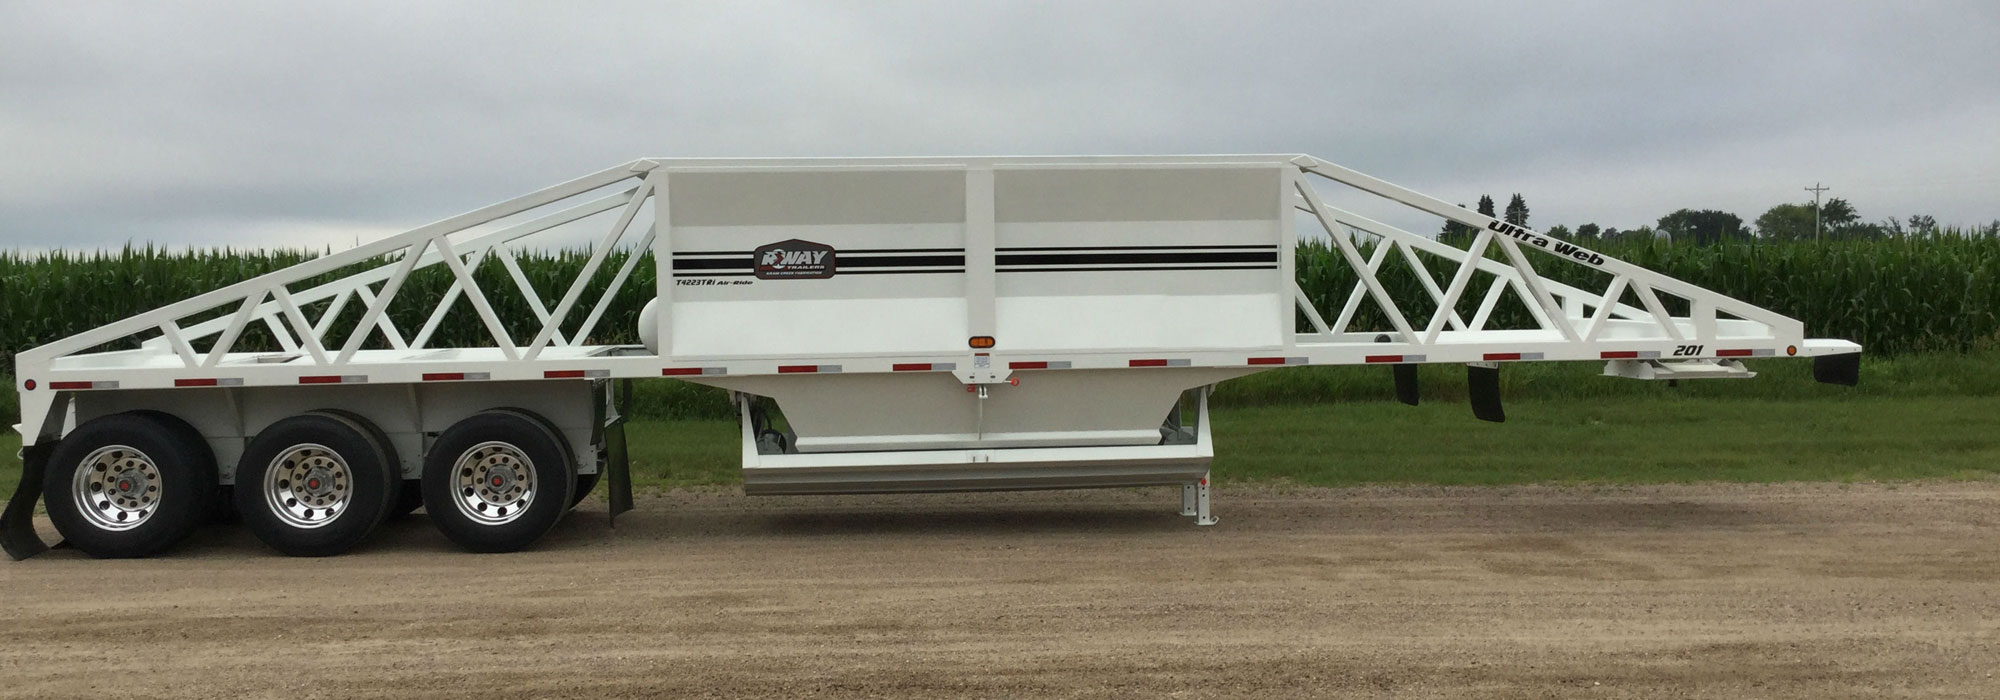 R-Way Belly Dump Trailer from Krain Creek Fabrication in Long Prairie, MN